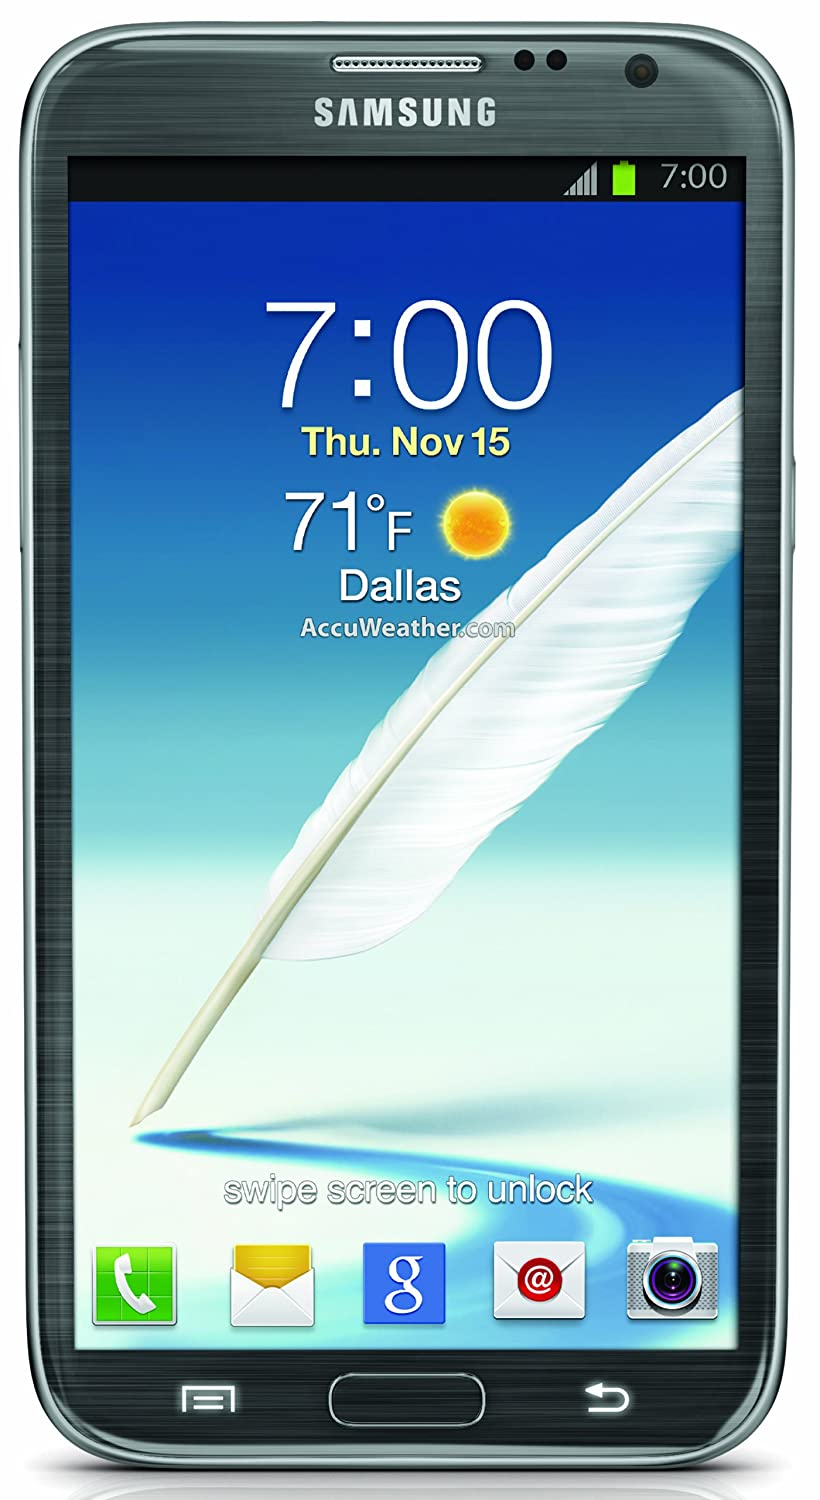 Samsung Galaxy Note II 4G Android Phone, Titanium (Sprint) $99.99